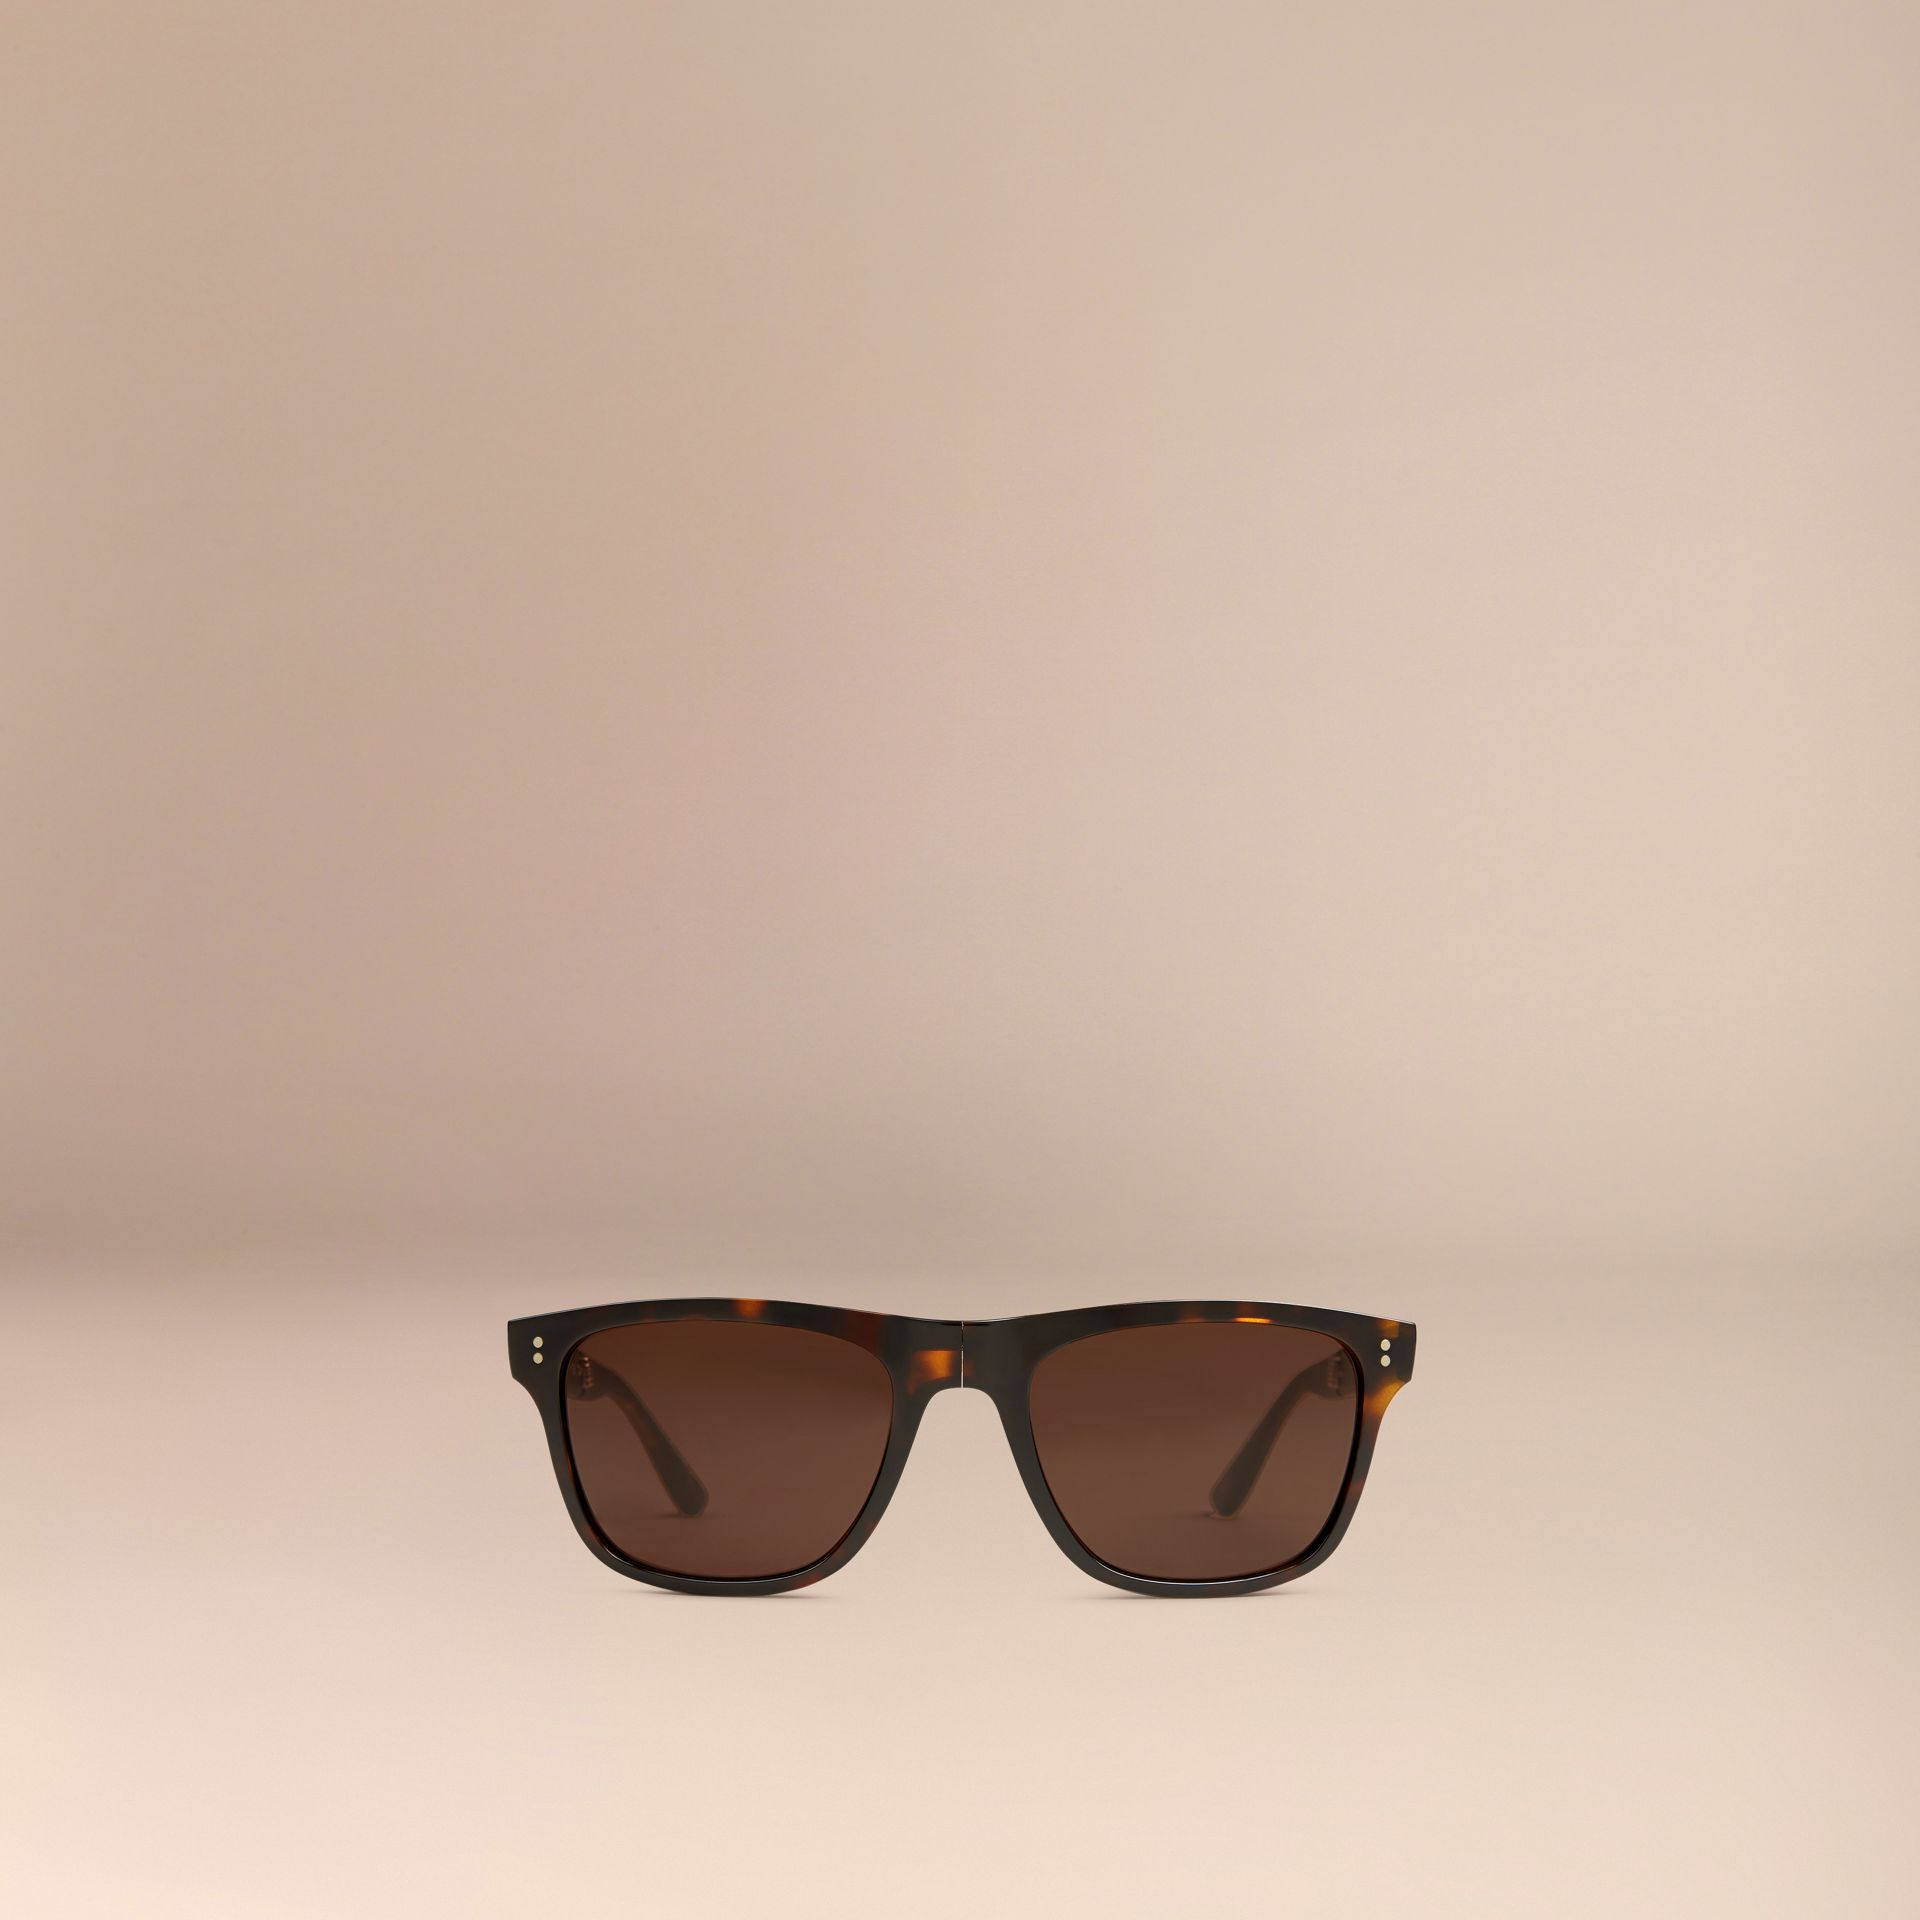 Folding Rectangular Frame Sunglasses in Dark Brown - Men | Burberry Singapore - gallery image 2